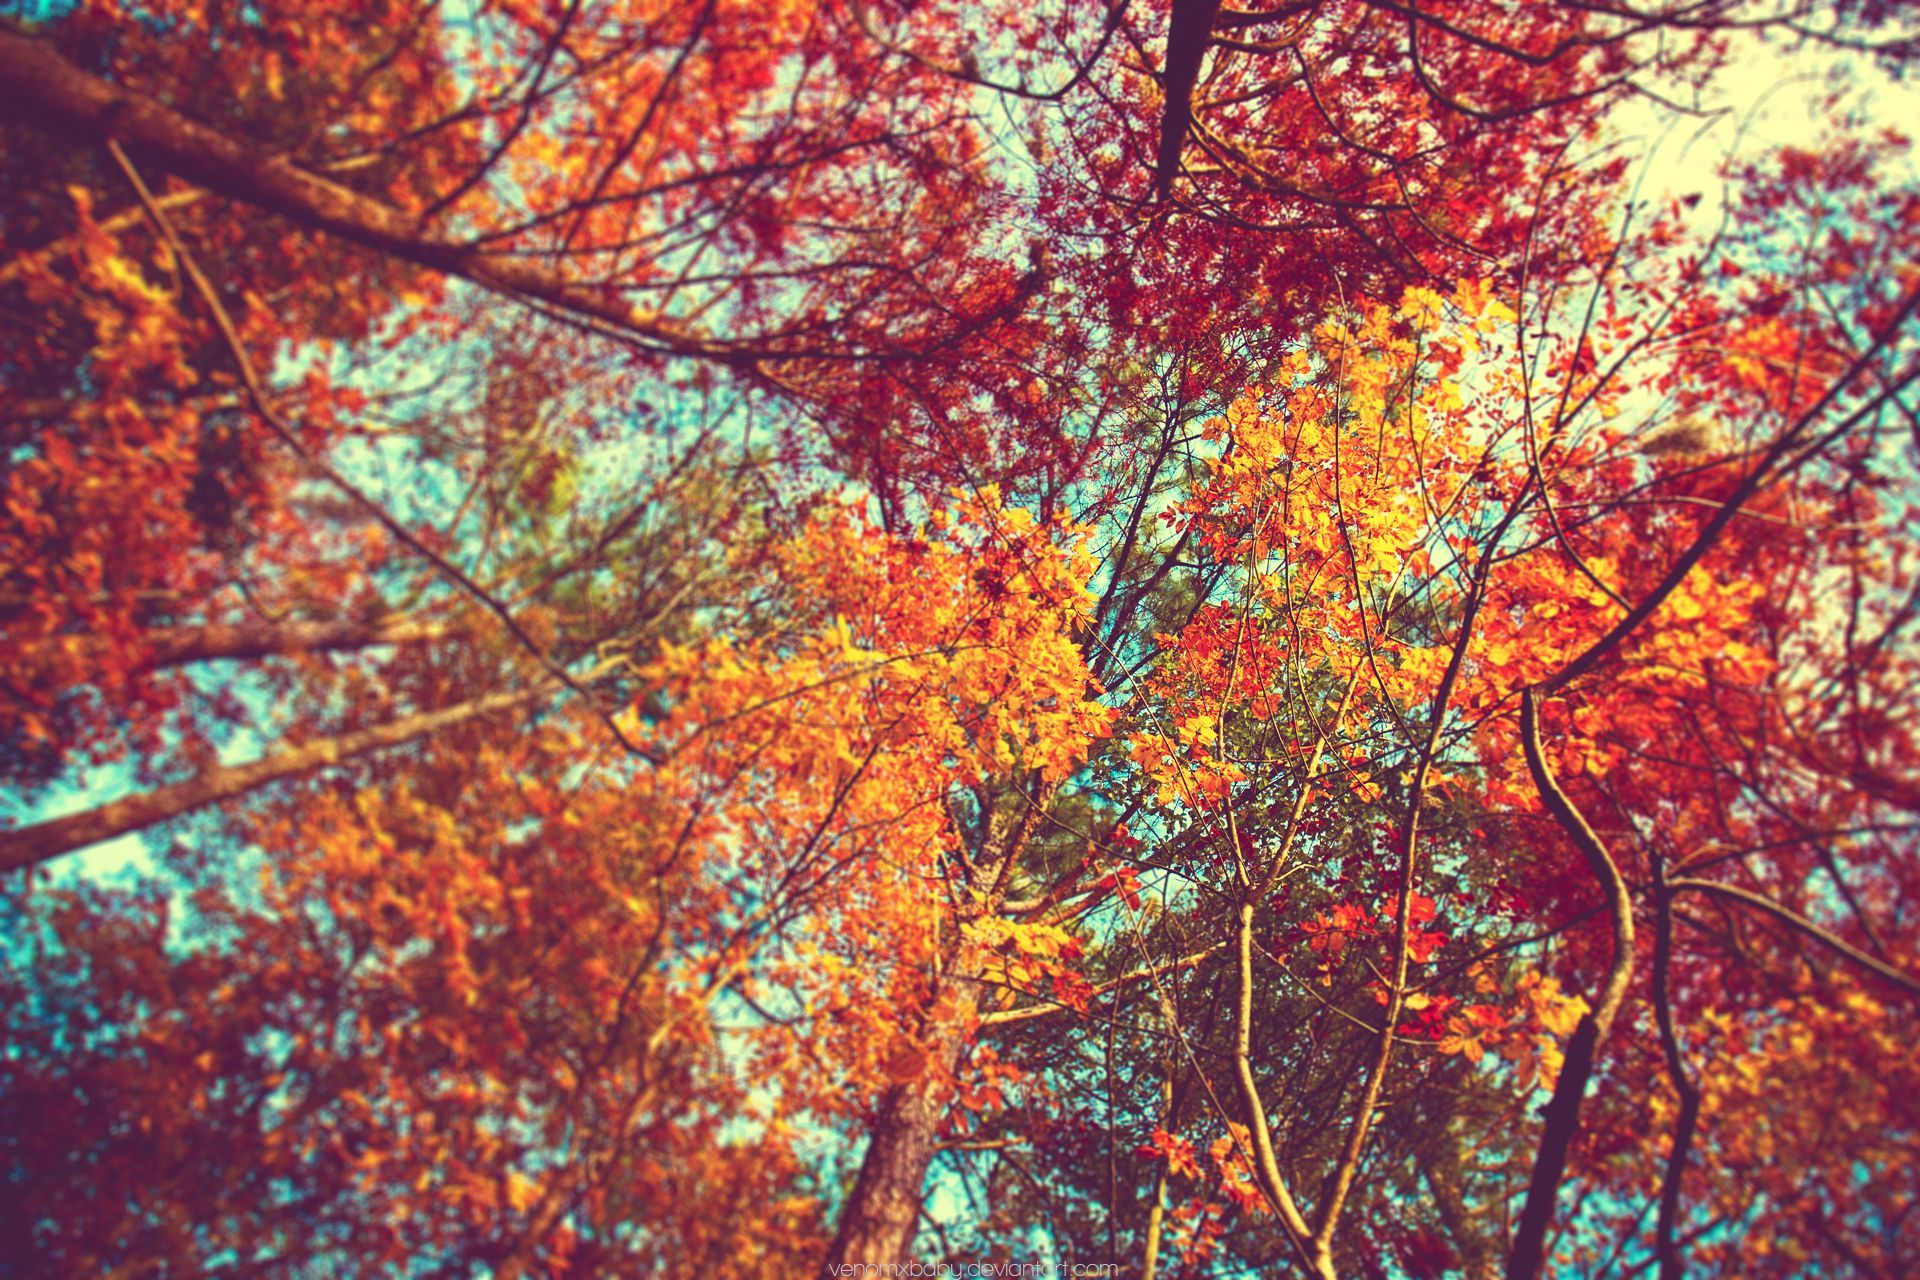 Autumn Tumblr Wallpapers 1080p With High Definition Autumn Aesthetic Wallpapers Top Free Autumn In 2020 Desktop Wallpaper Fall Autumn Tumblr Fall Backgrounds Tumblr